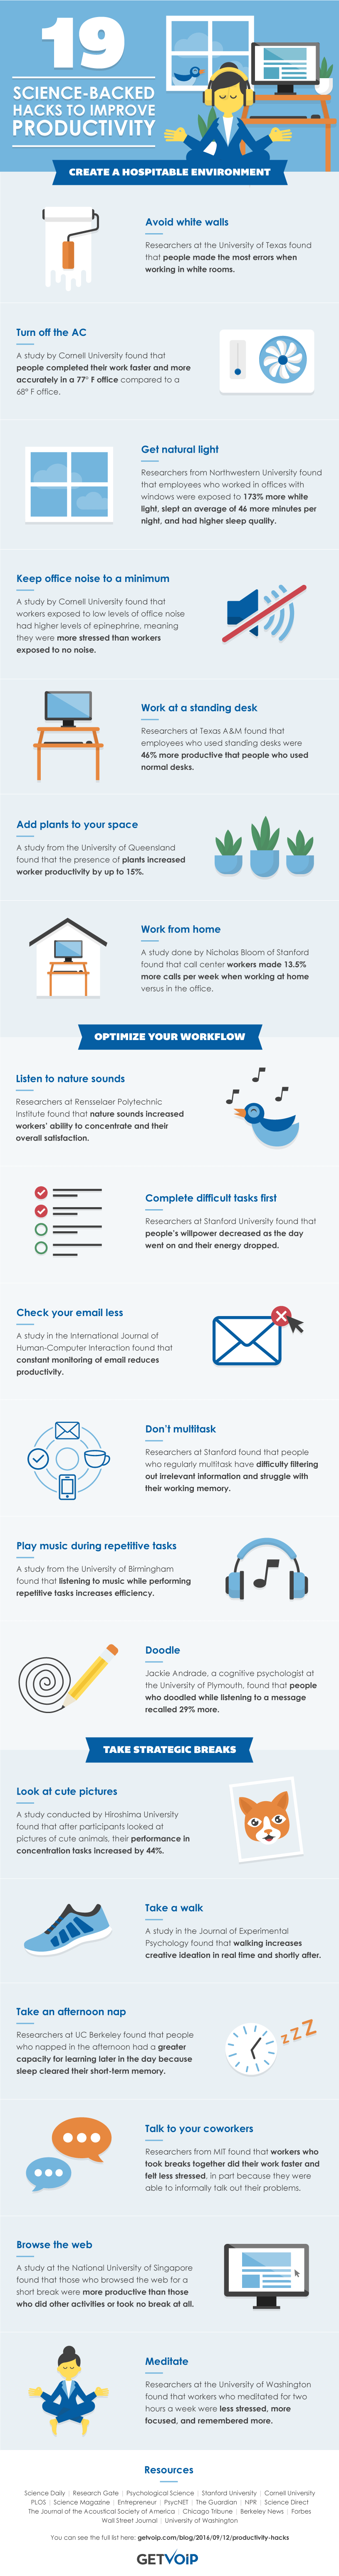 Boost Your Workplace Productivity: 19 Hardworking Tips - Infographic